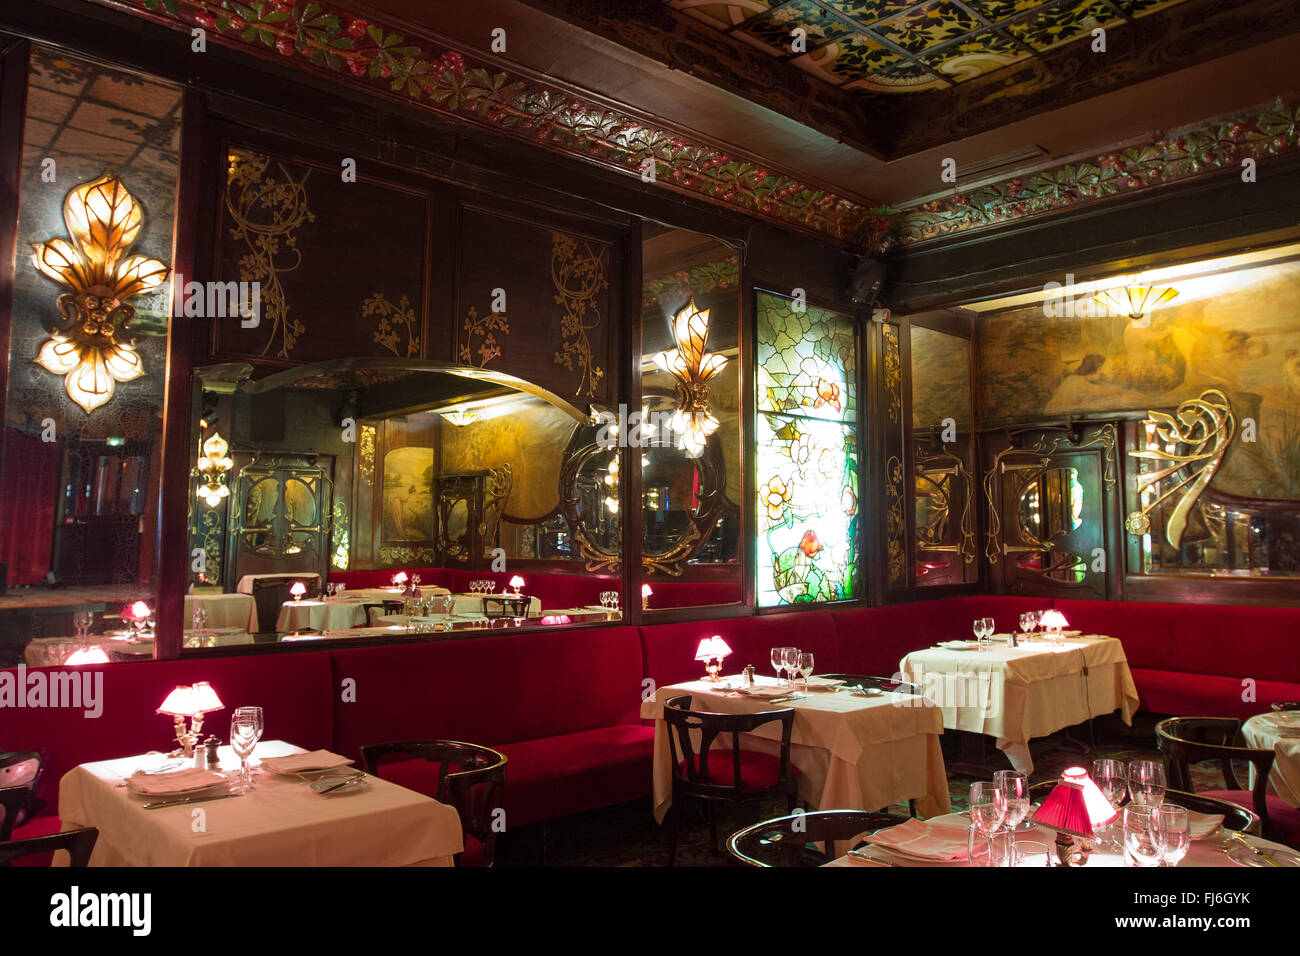 Interior of the art nouveau style maxim 39 s de paris restaurant paris stock photo 97260679 alamy - Belle maison restaurant paris ...